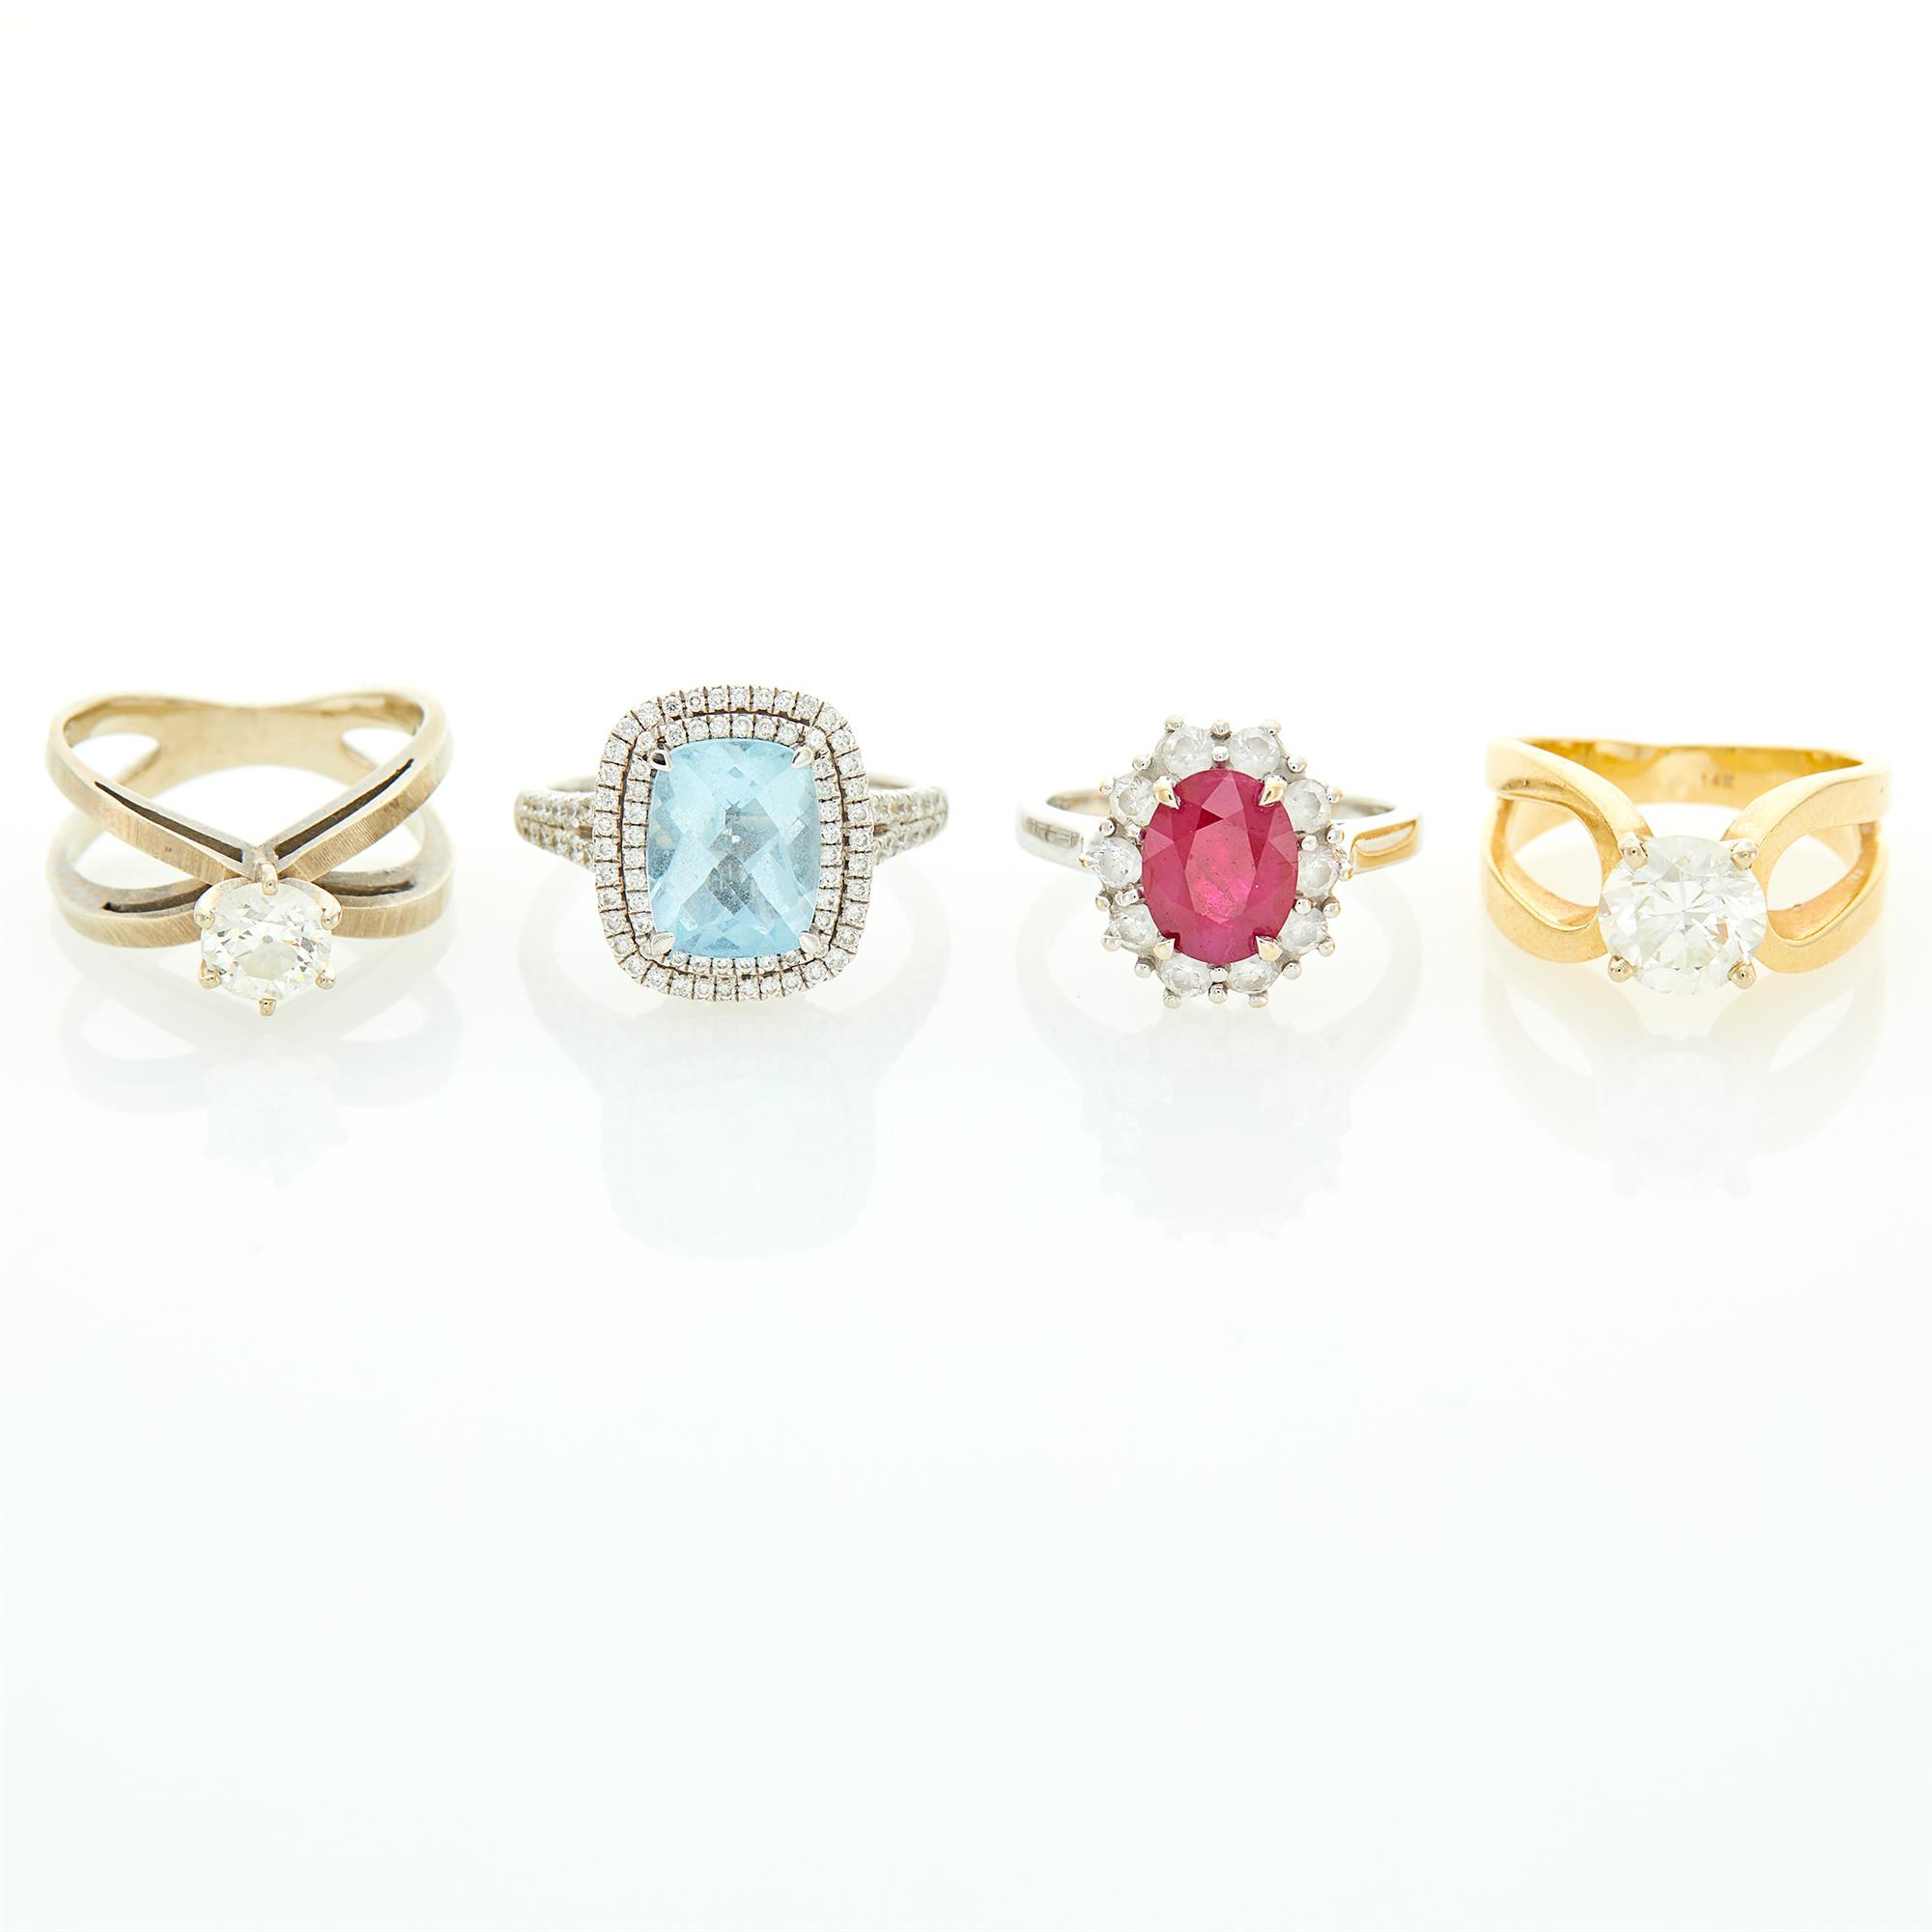 Lot image - Four White and Yellow Gold, Diamond and Gem-Set Rings